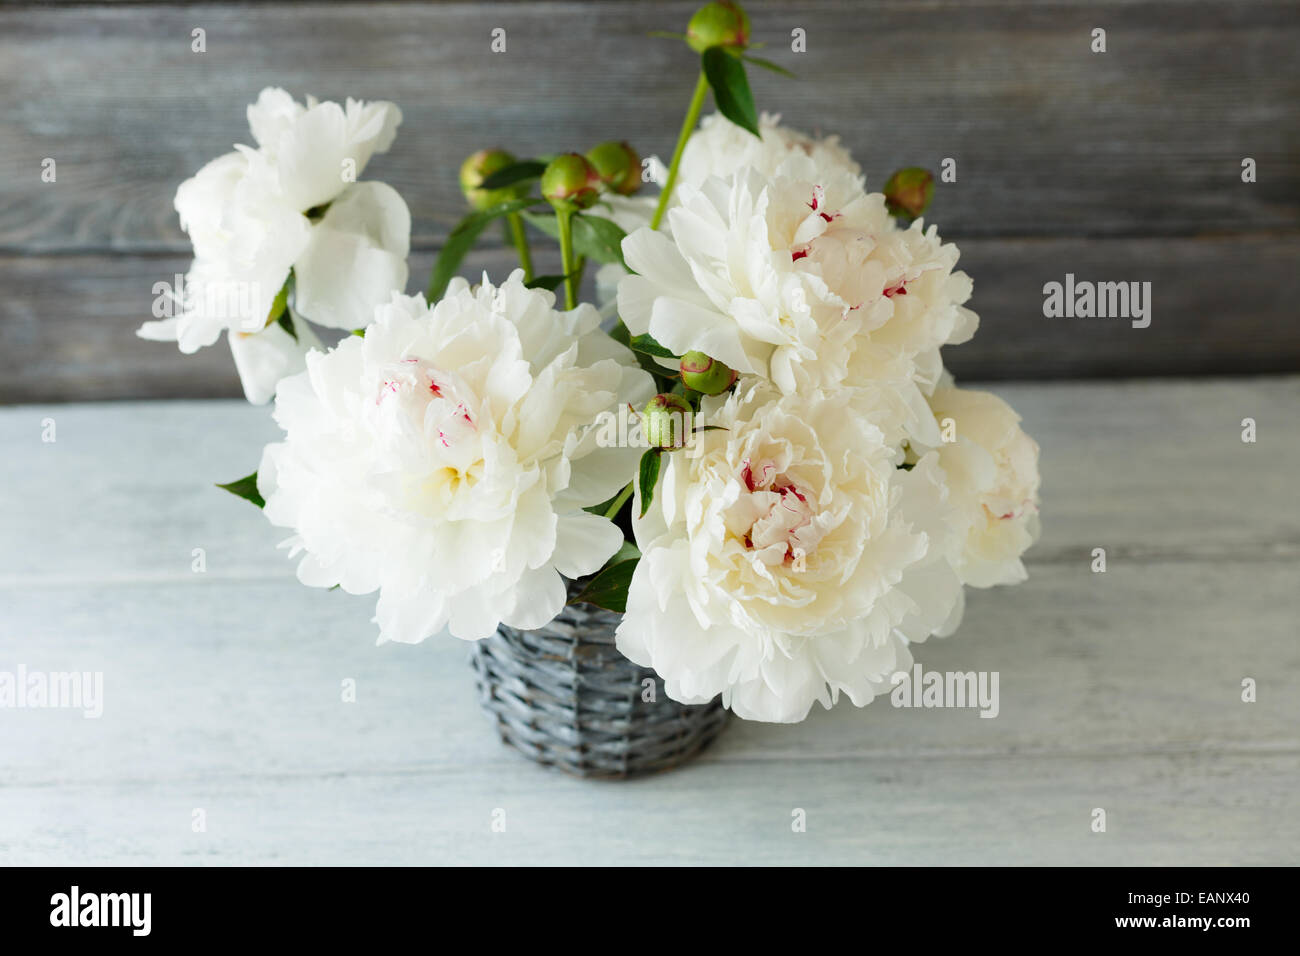 White peonies in a vase on the boards, wooden background Stock Photo